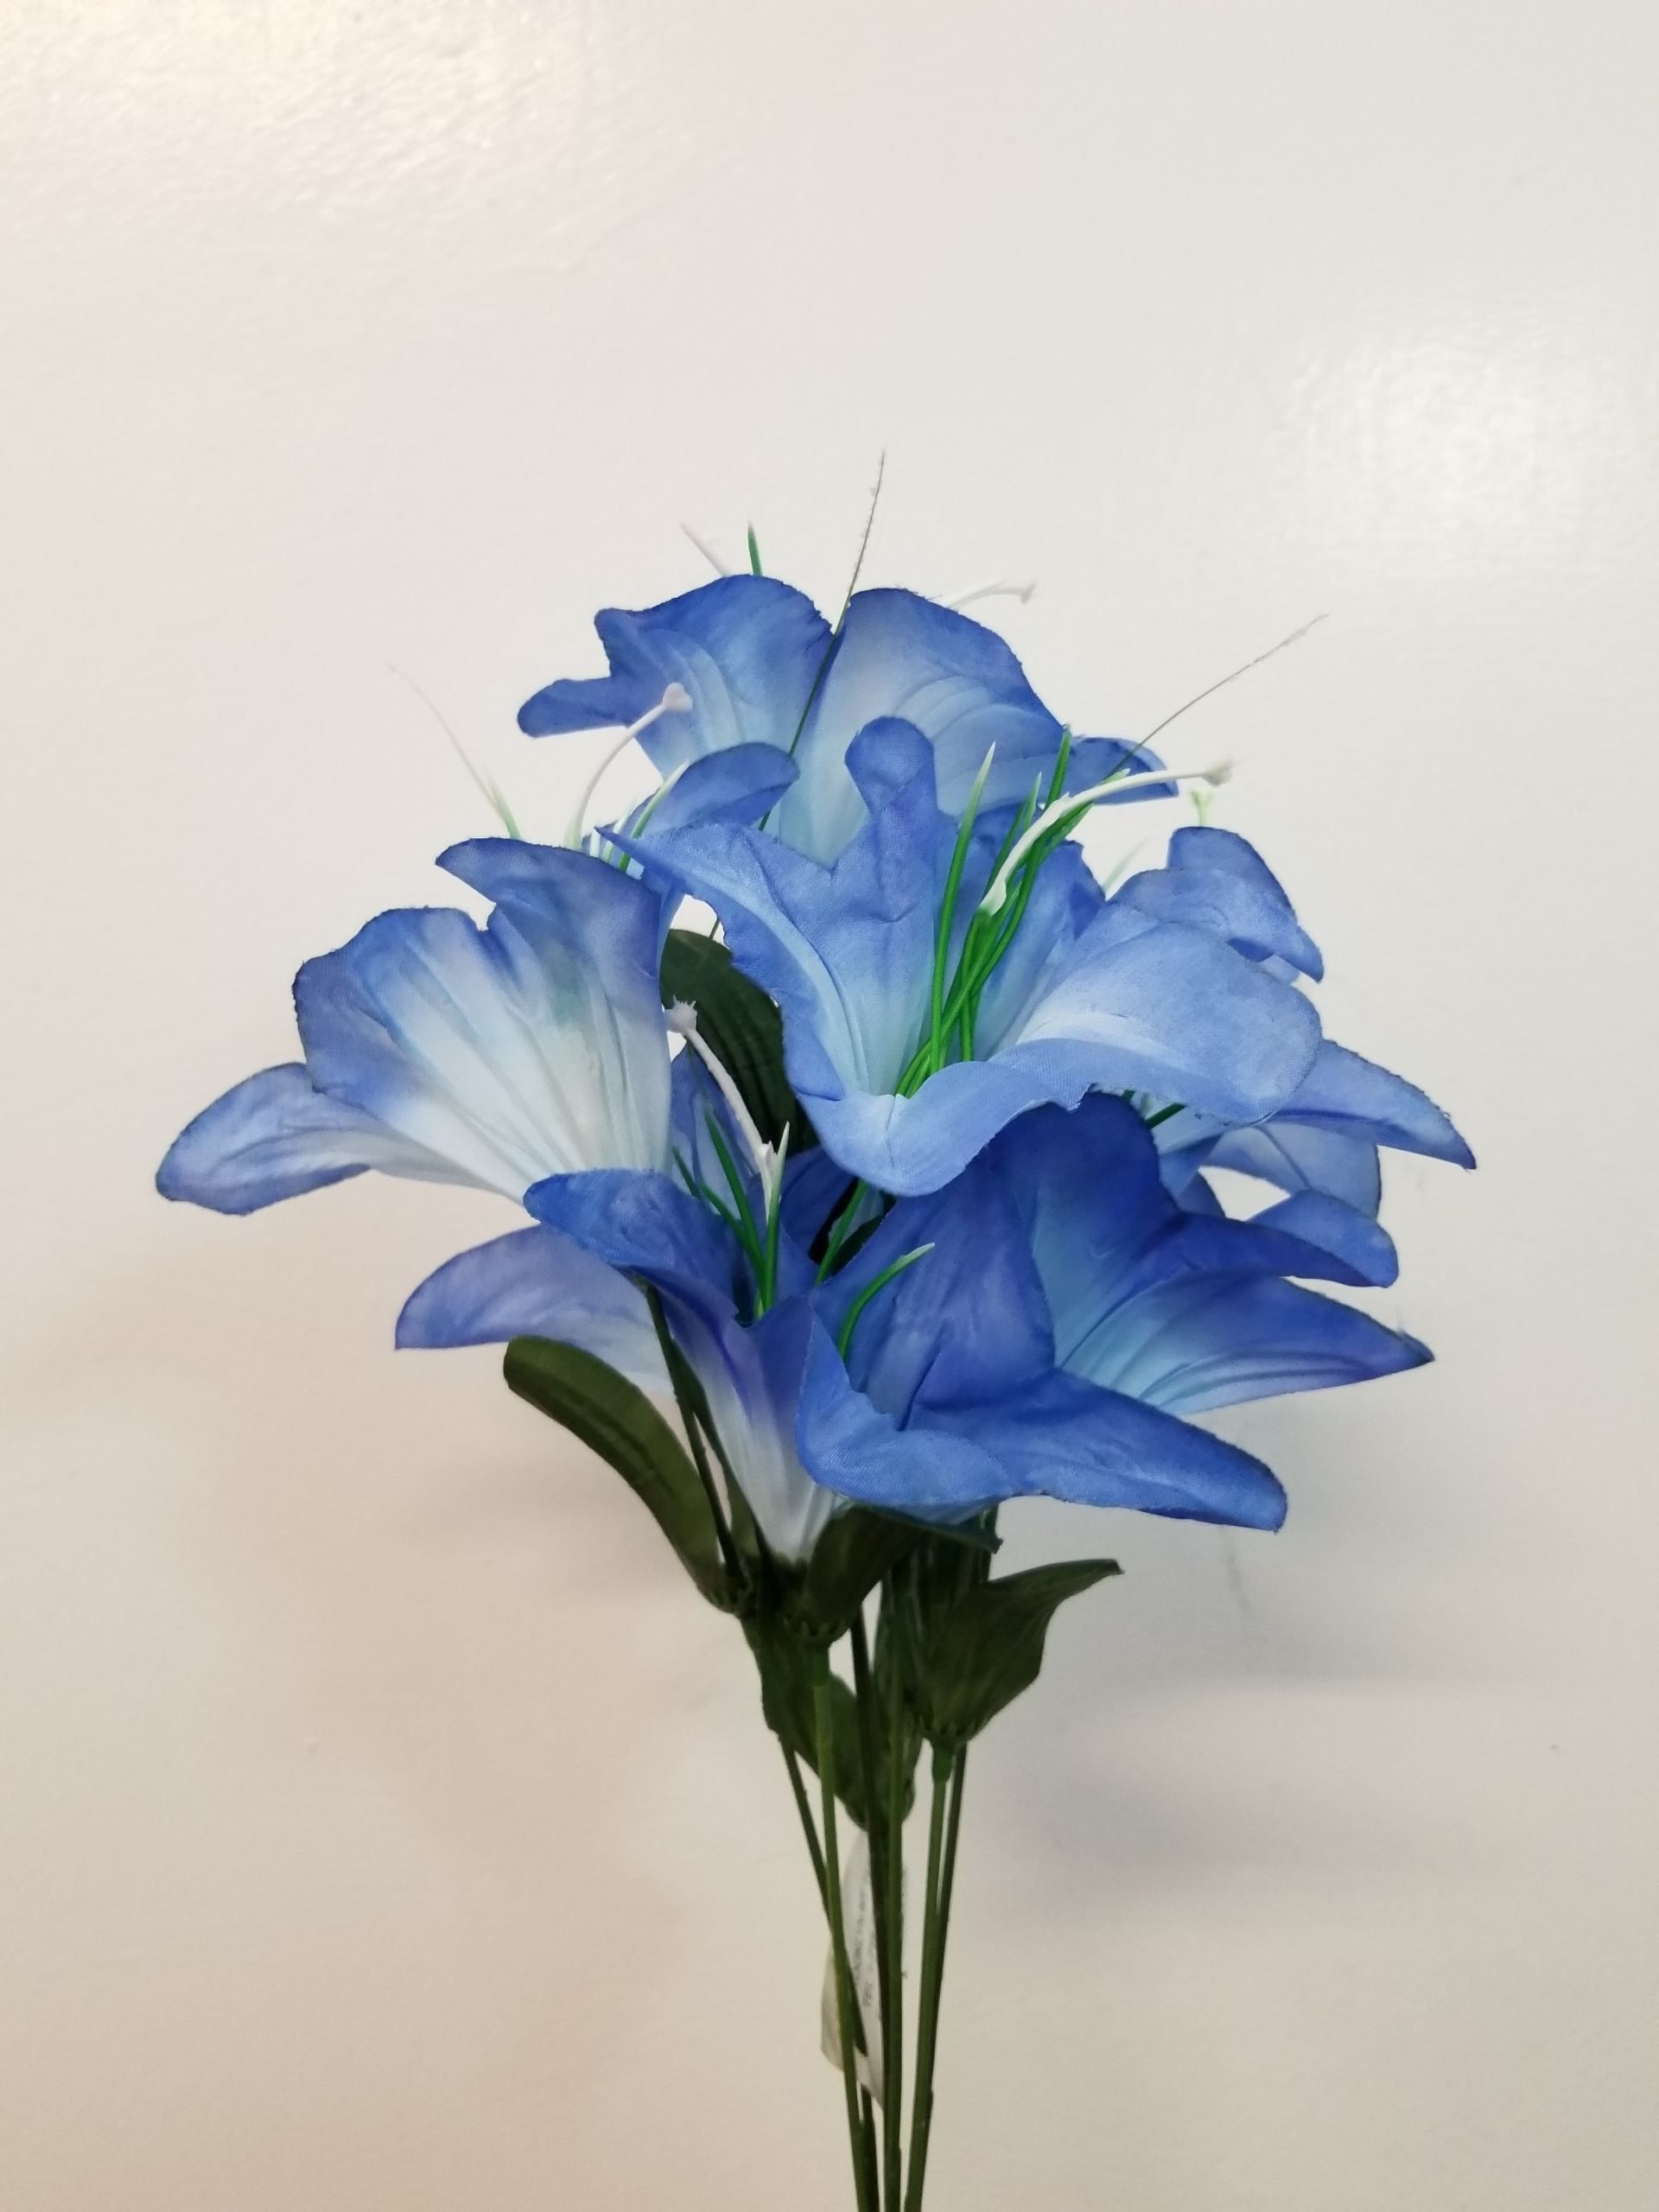 Discount Wedding & Arrangement Silk Flowers - Wholesale | KSW